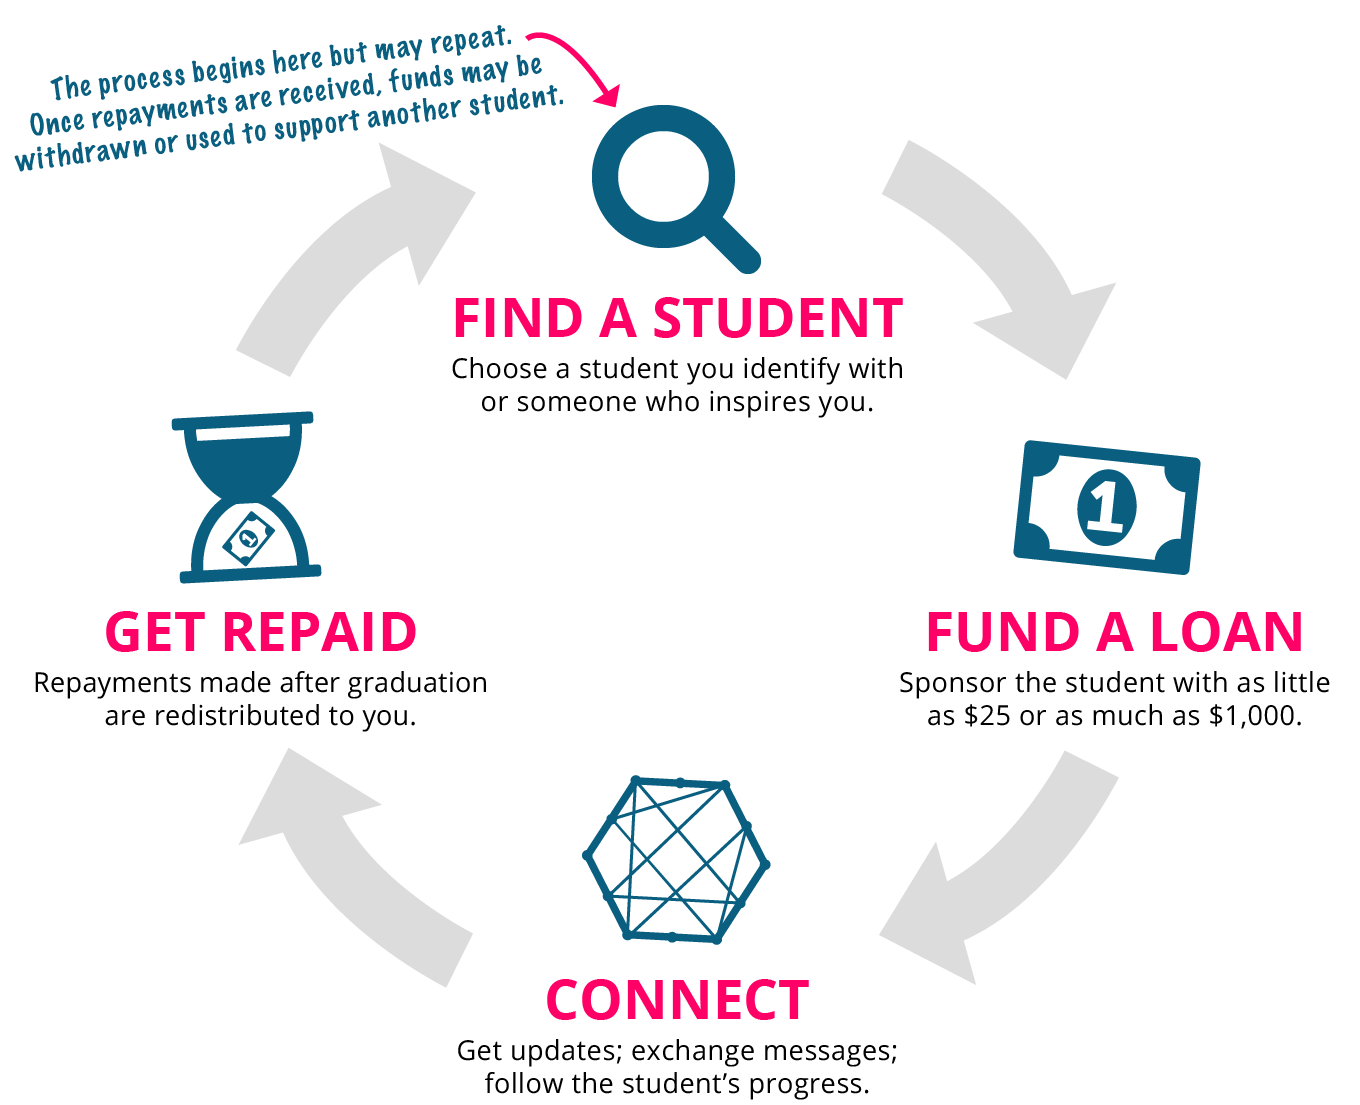 How Zomia Works: Fund a Student Loan